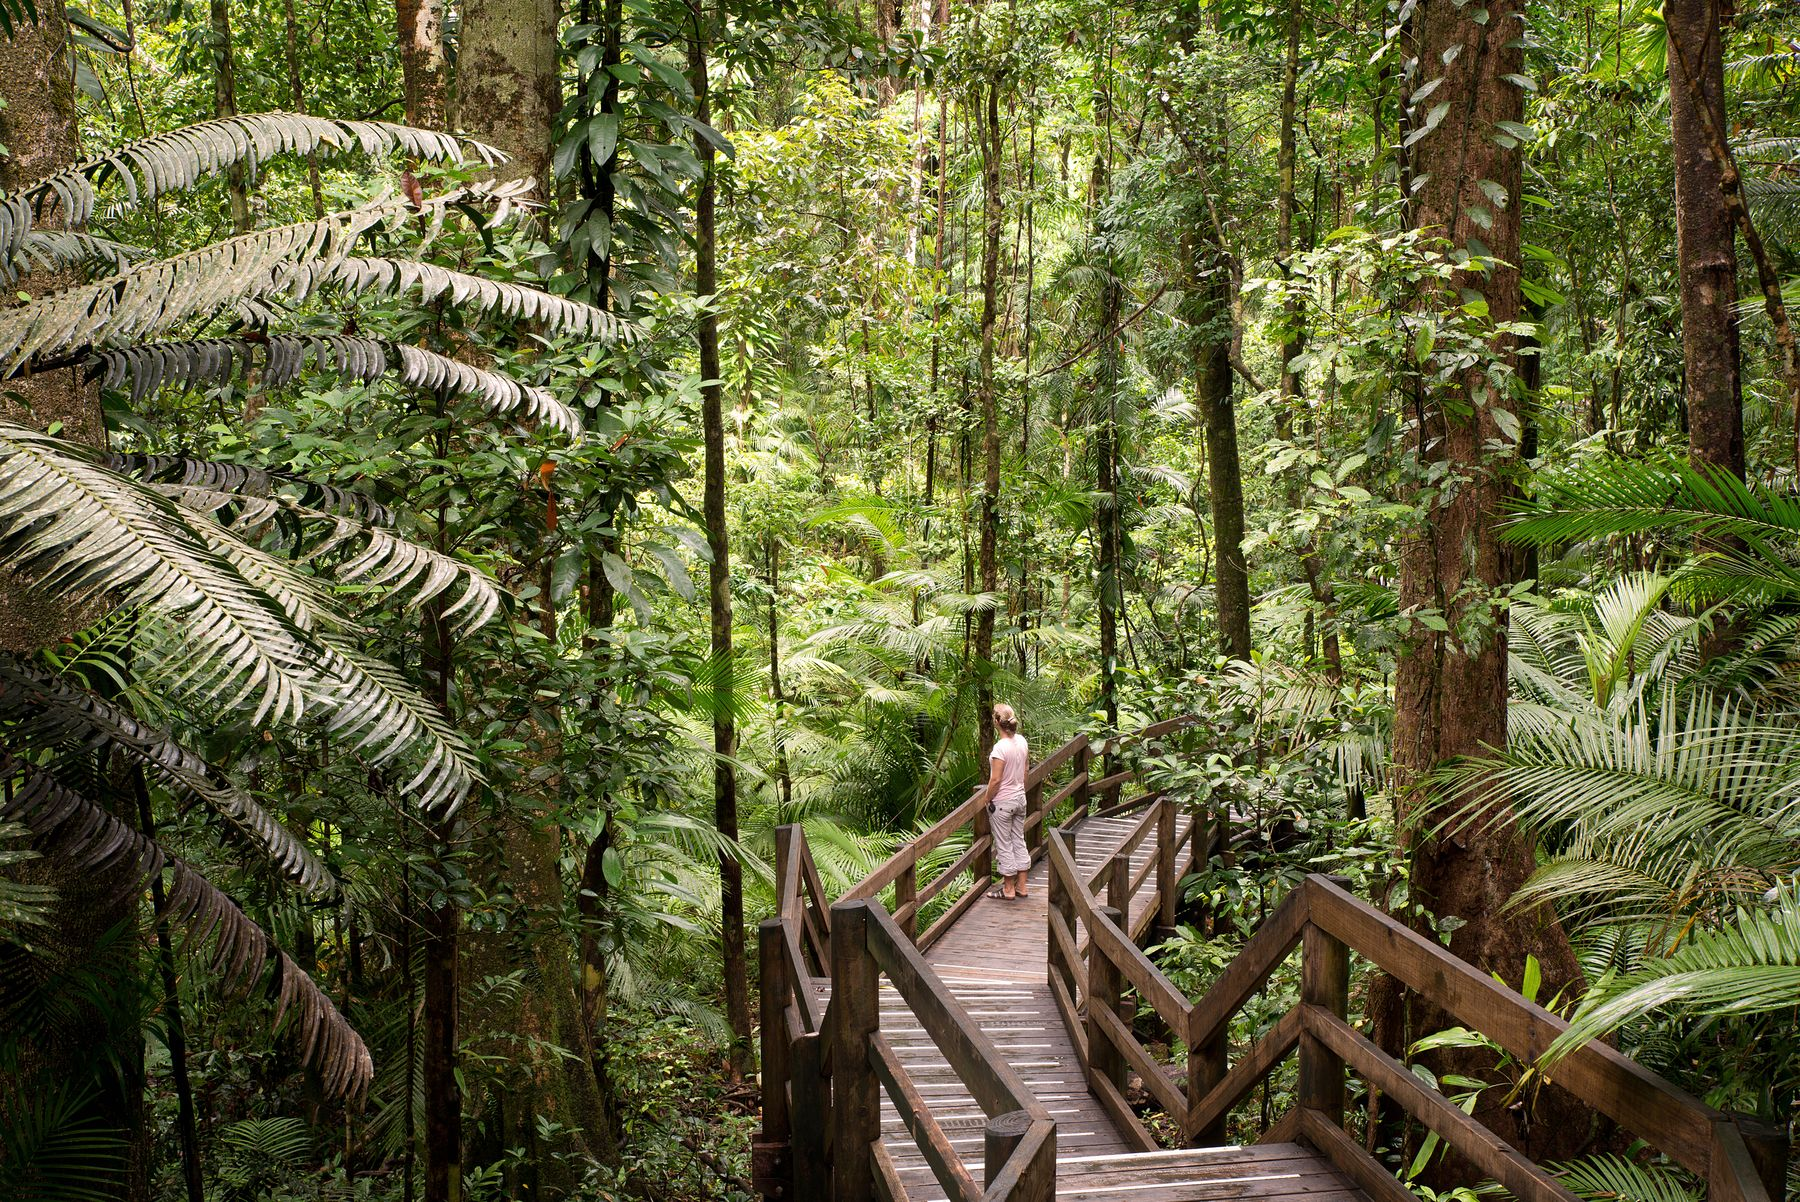 With the Queensland borders open, you can explore the Daintree Rainforest